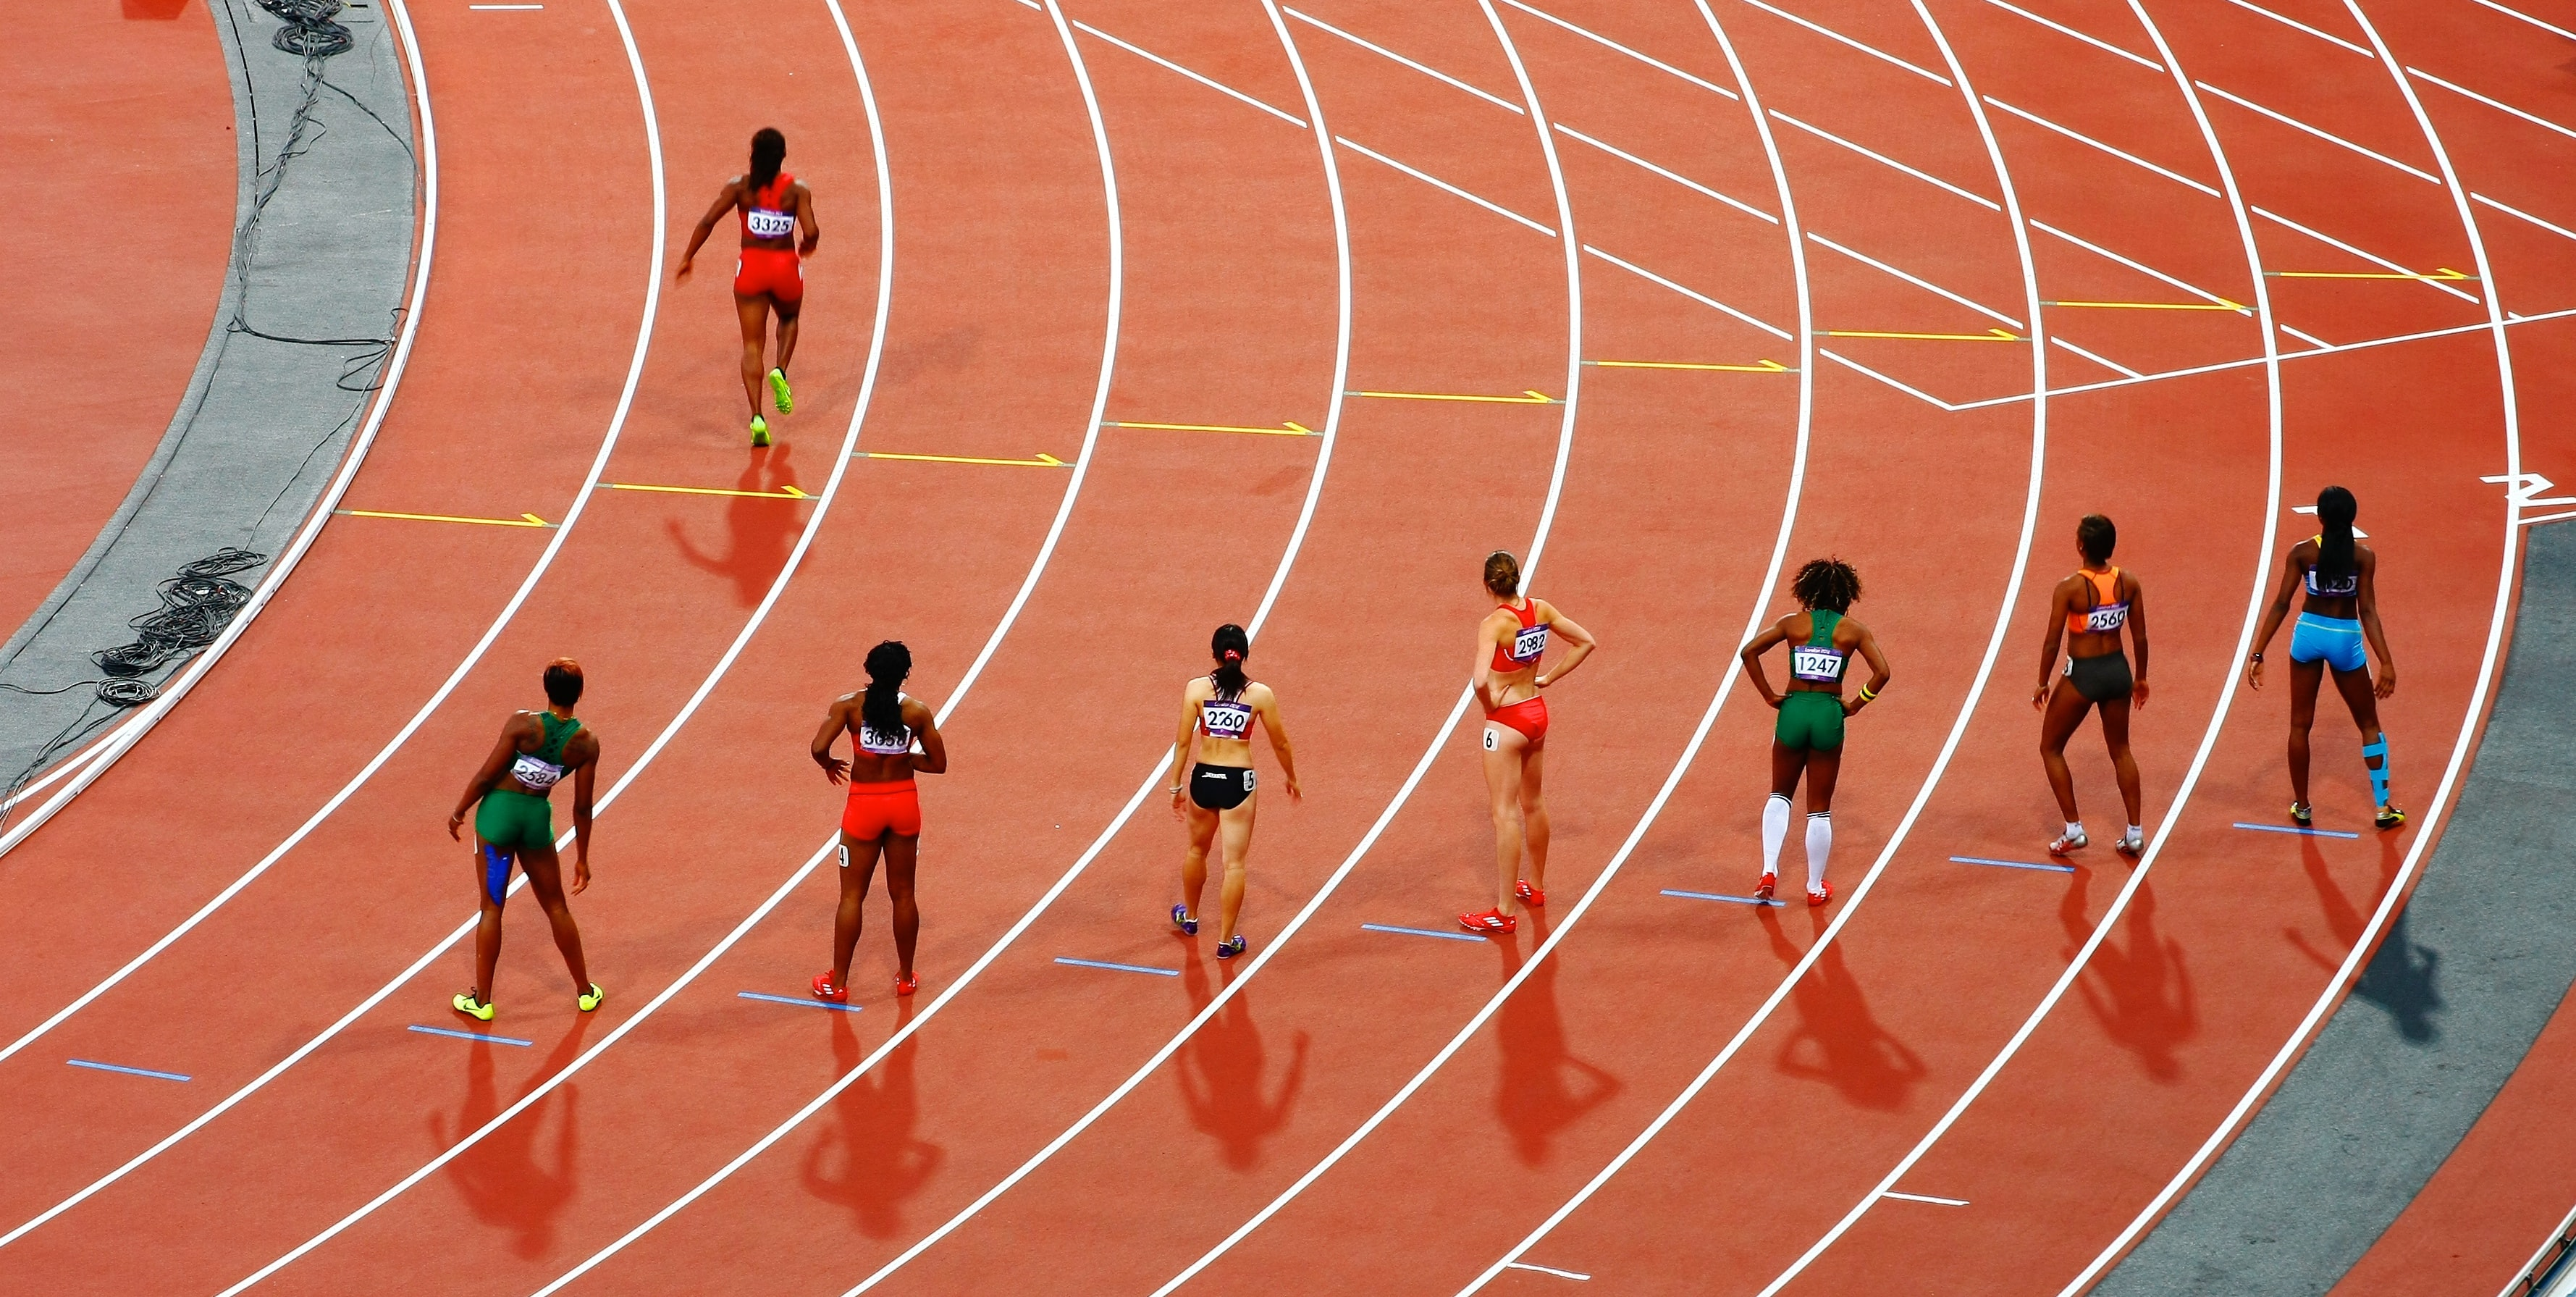 A woman running on a race track while seven others stand back and stretch